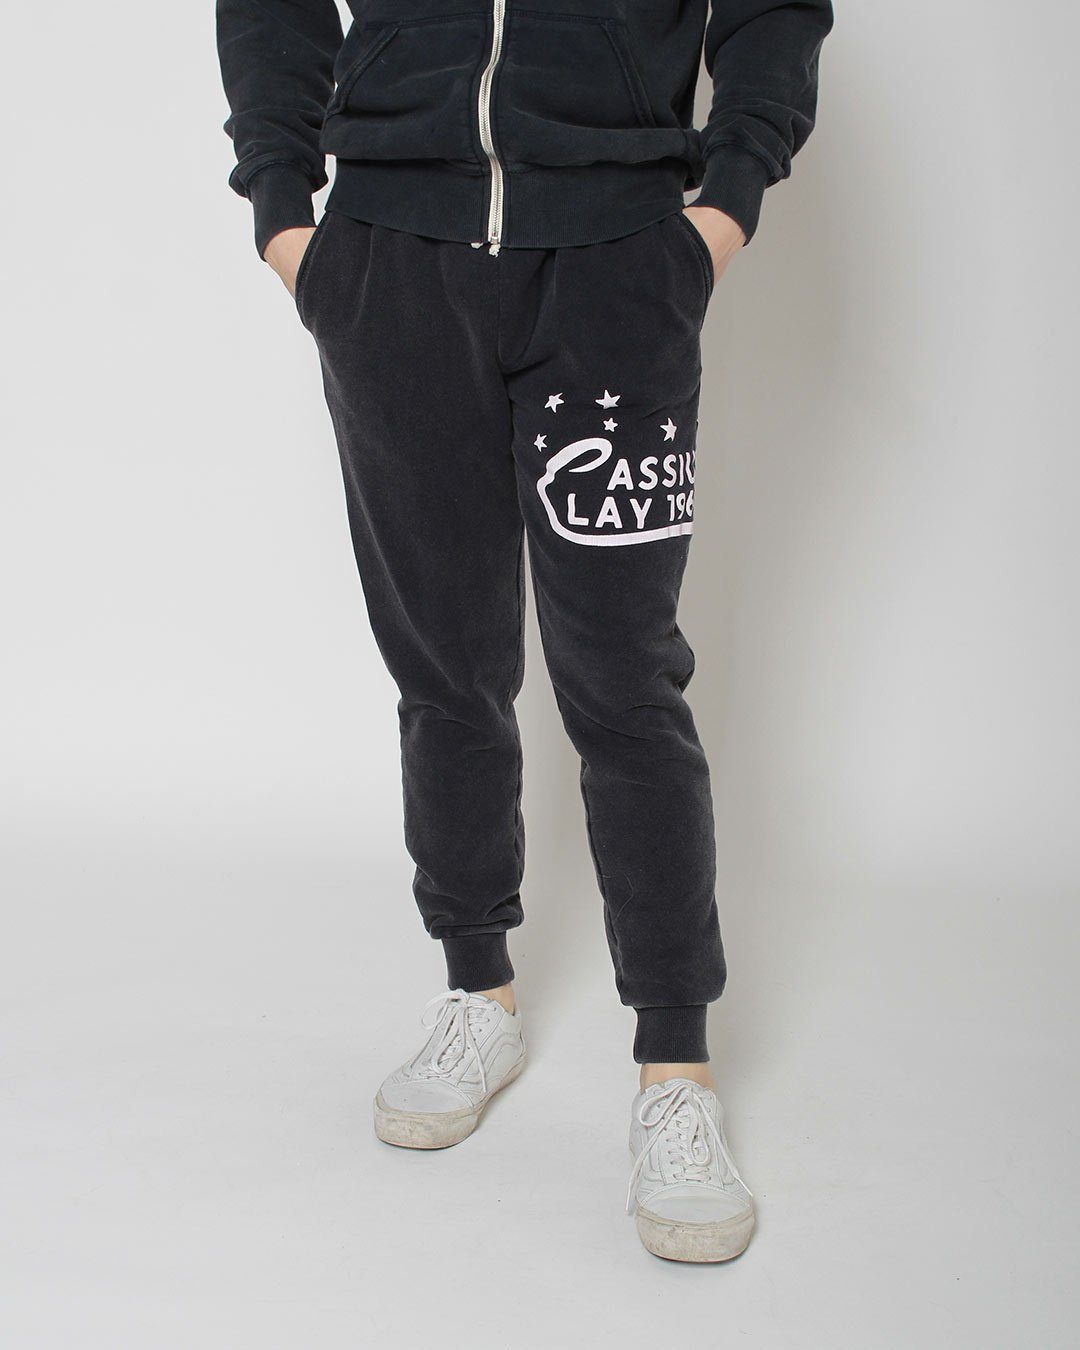 Cassius Clay Legacy Sweatpants - Copasetic Clothing Ltd. dba Roots of Fight